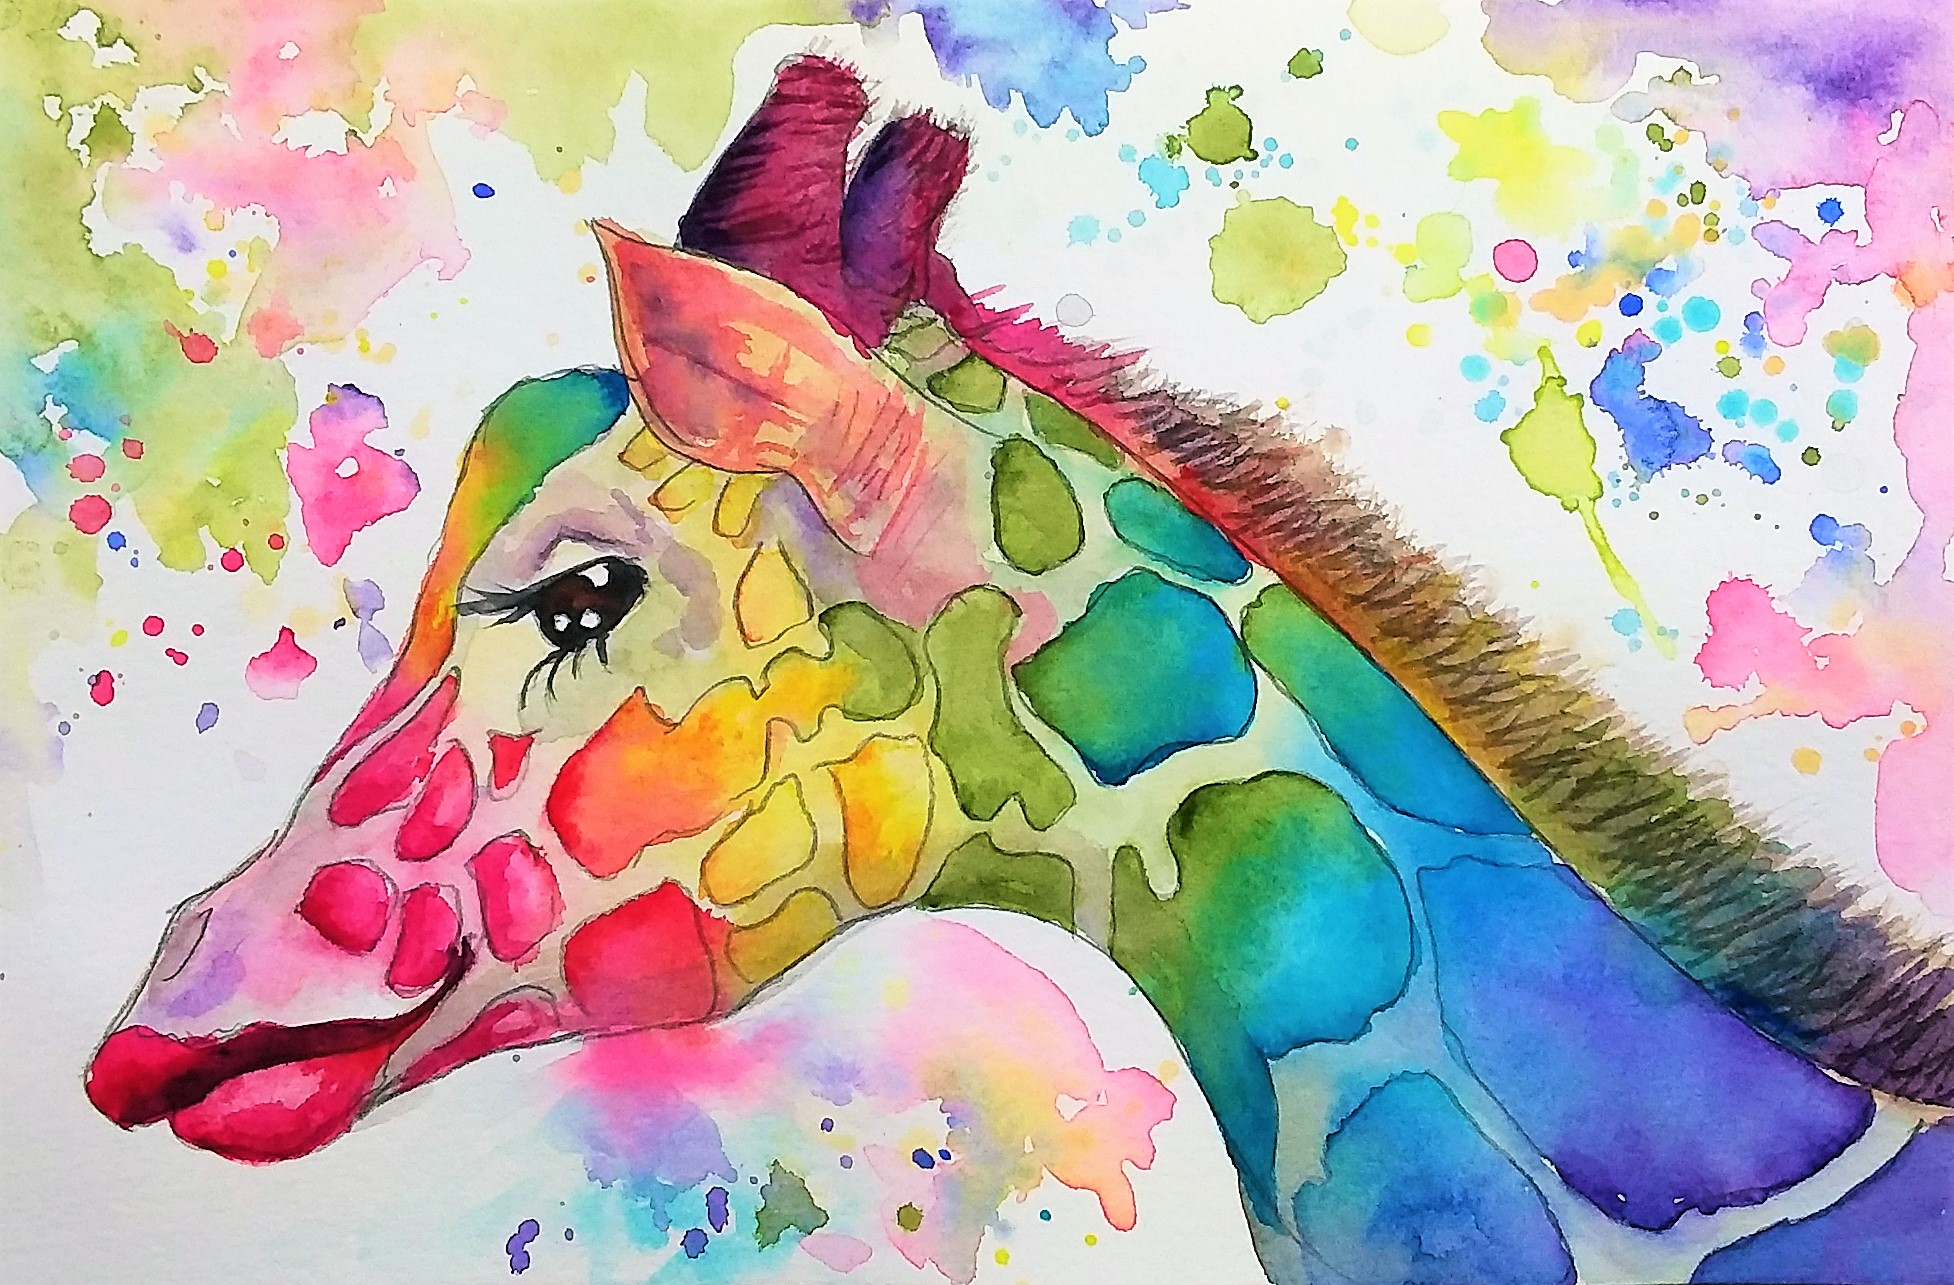 LIVE! Let's Paint a Rainbow Giraffe in Watercolor! 12:30pm ET!